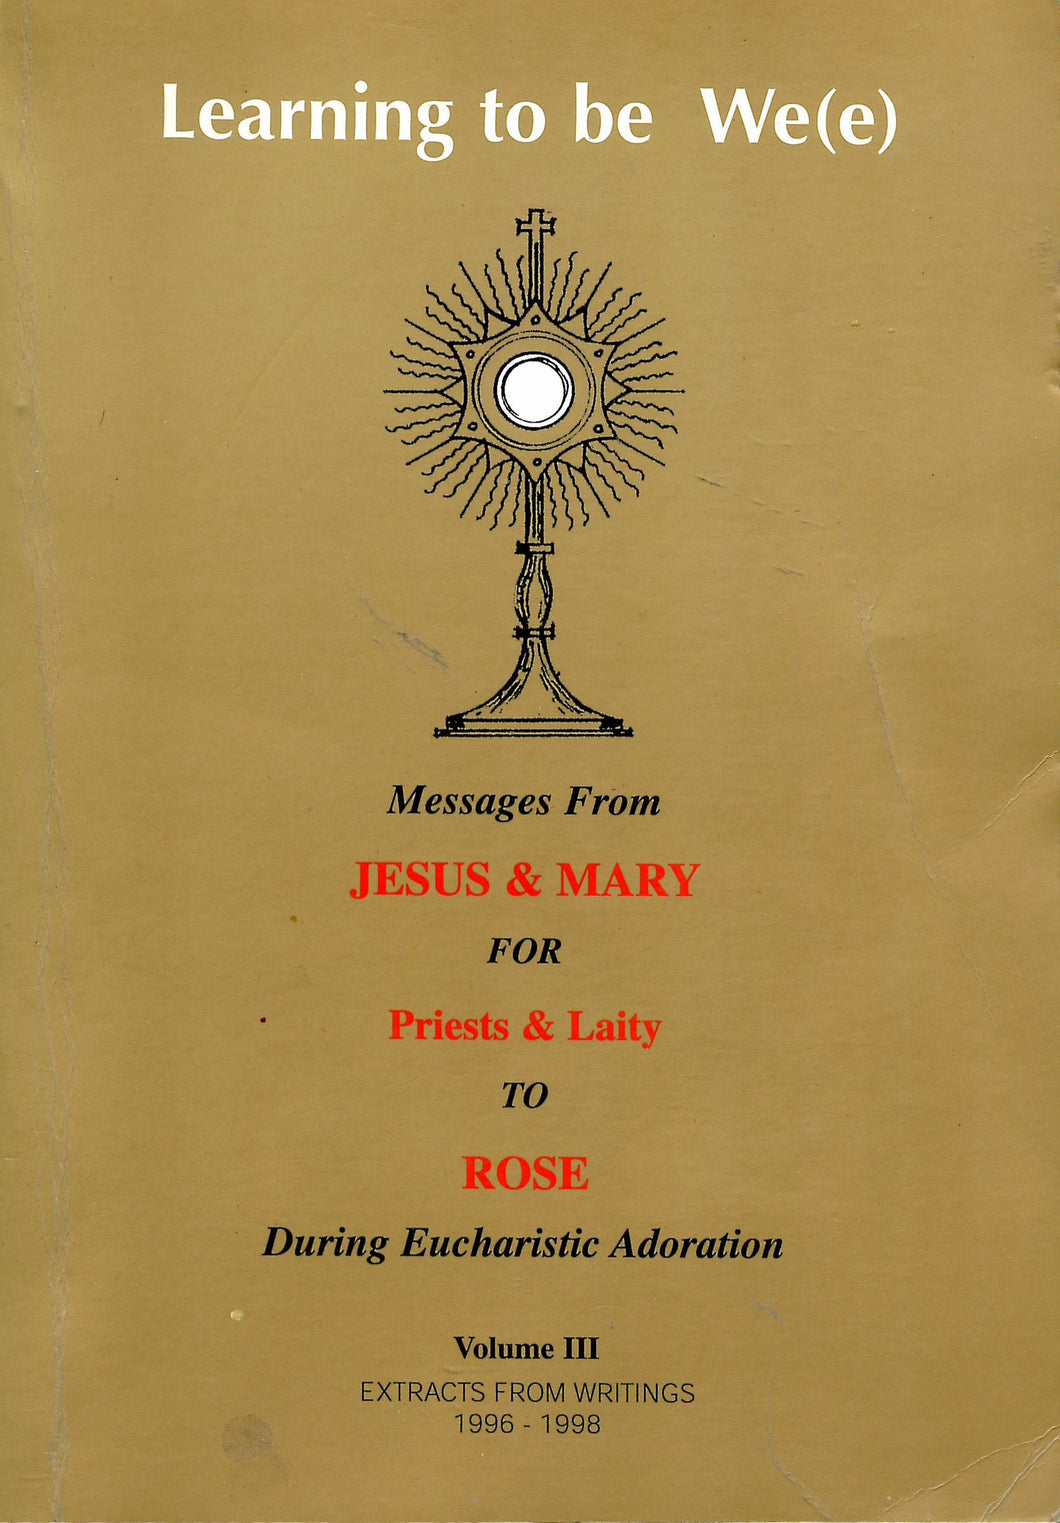 Learning to be We(e): Messages from Jesus & Mary for Priests & Laity to Rose During Eucharistic Adoration - Vollume III, Extracts from Writings 1996-1998